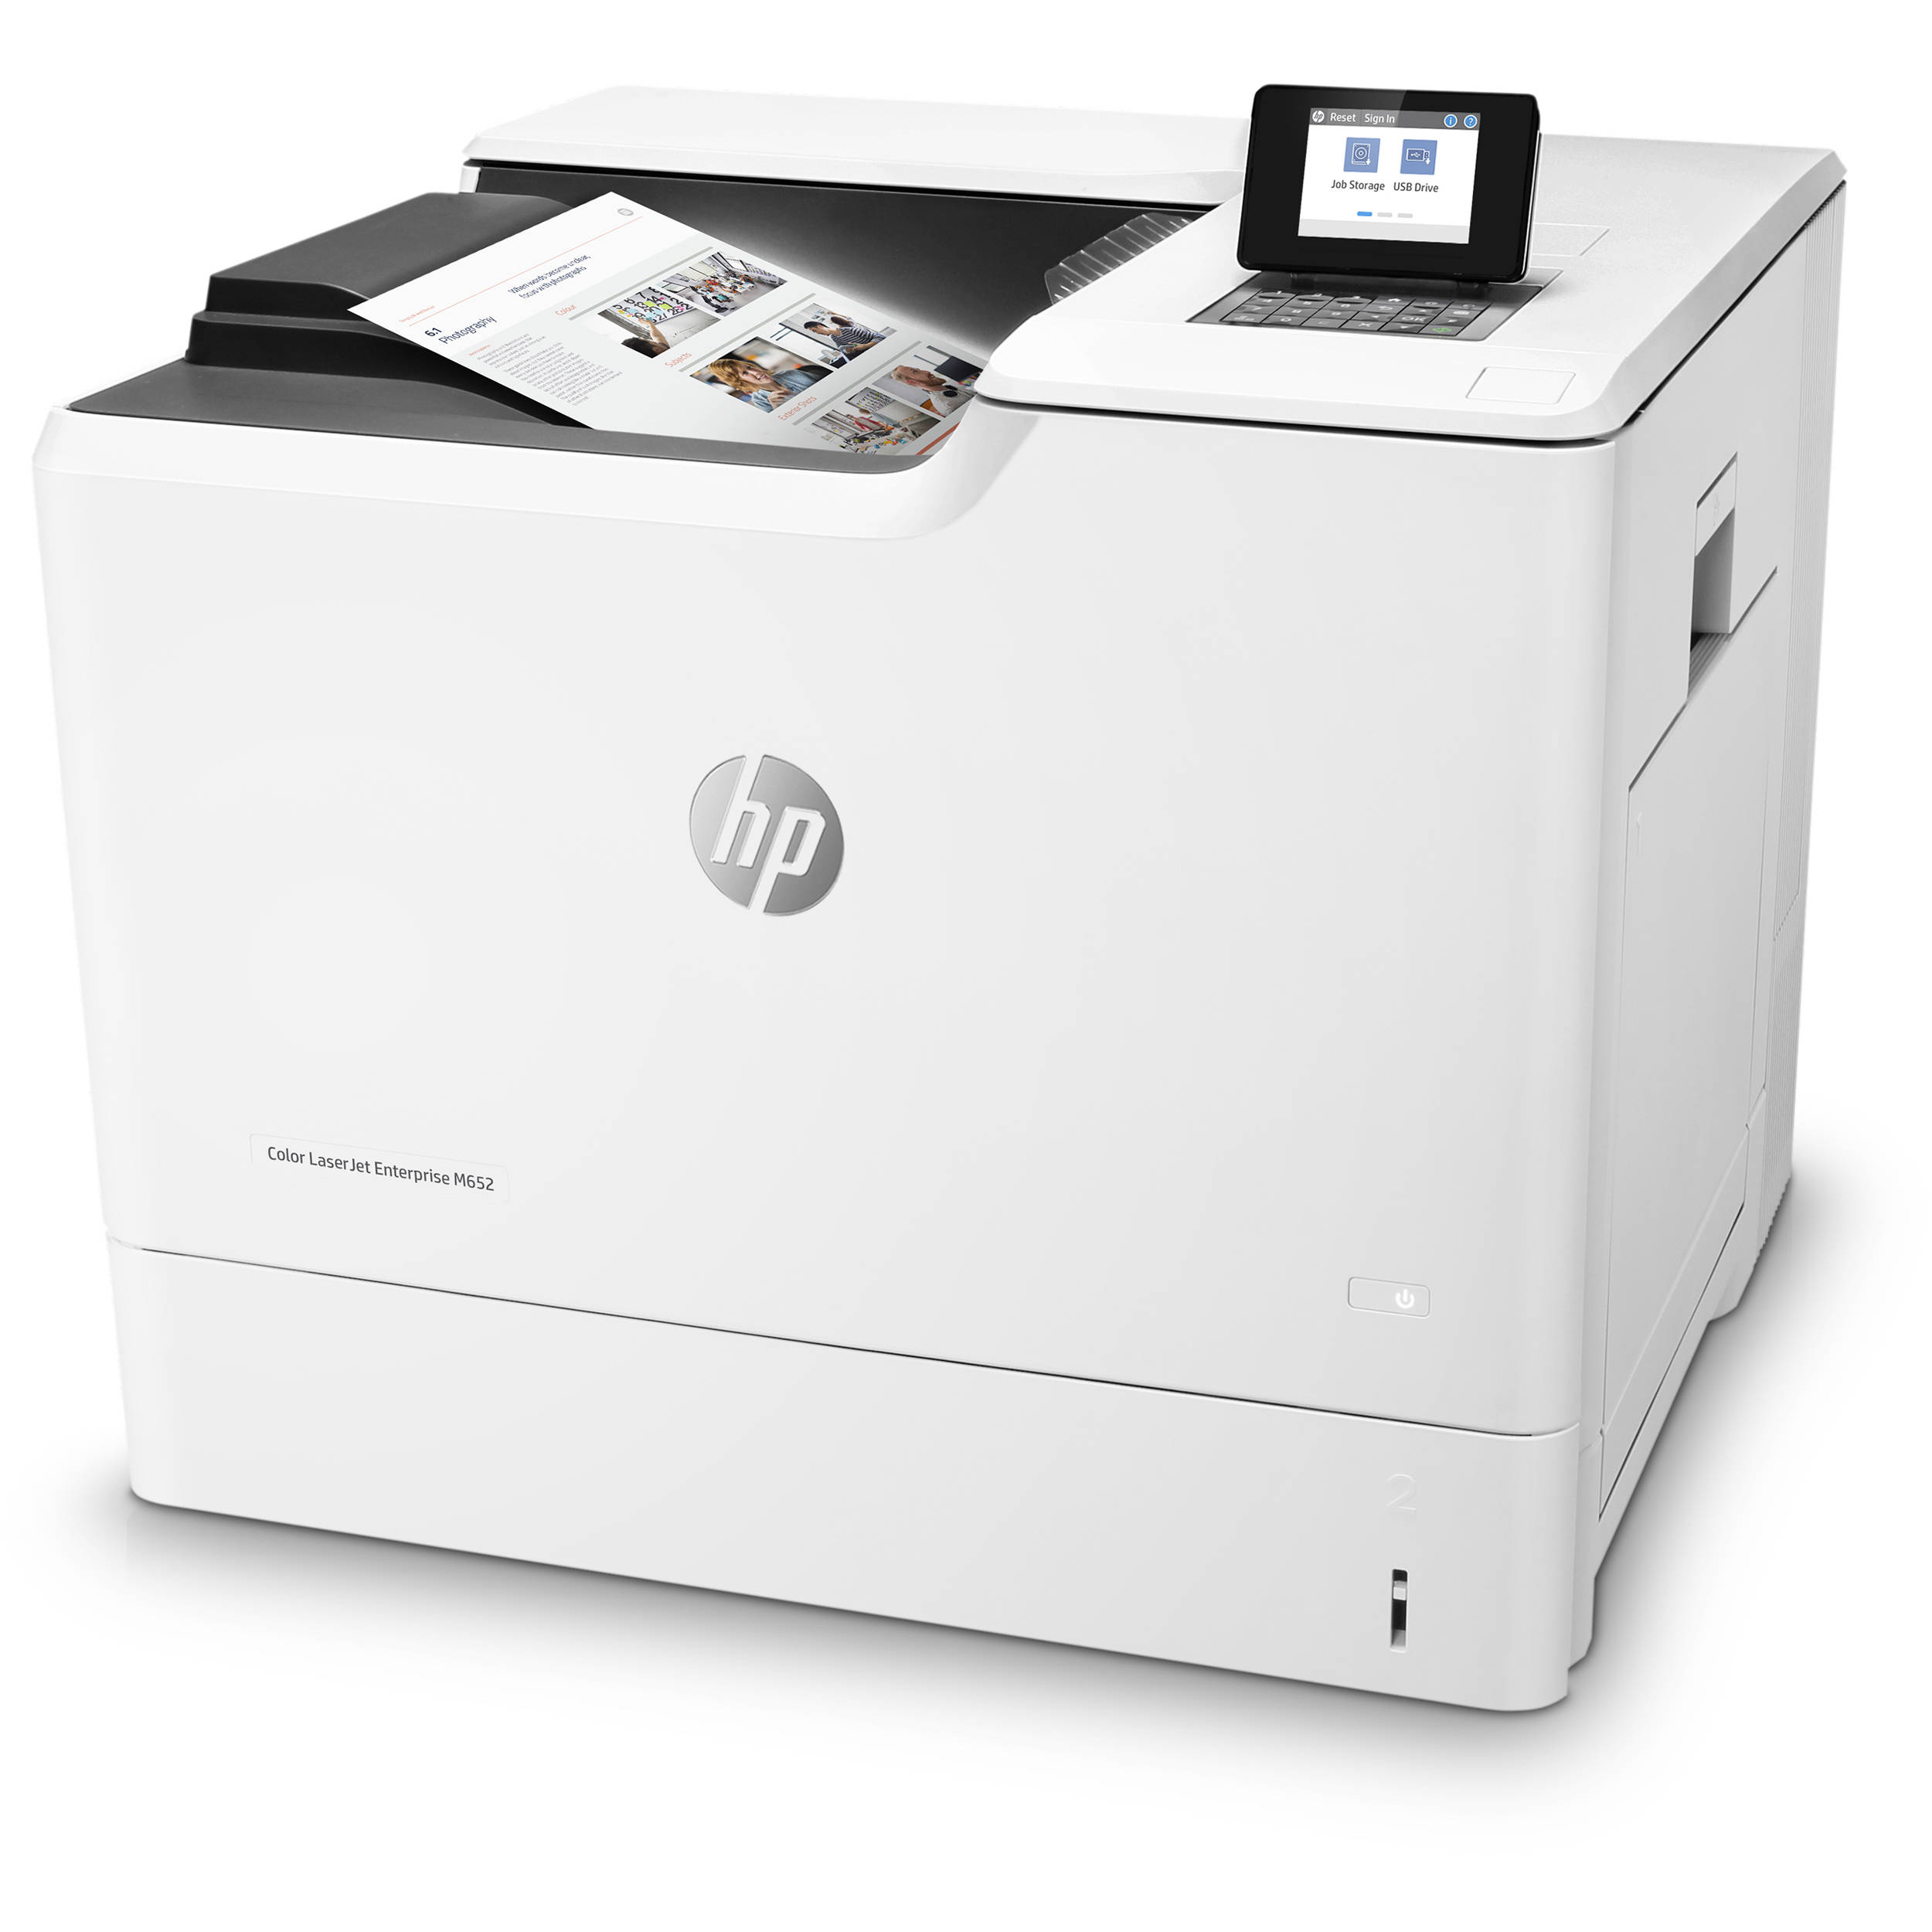 HP Color LaserJet Enterprise M652n Laser Printer J7Z98A B&H